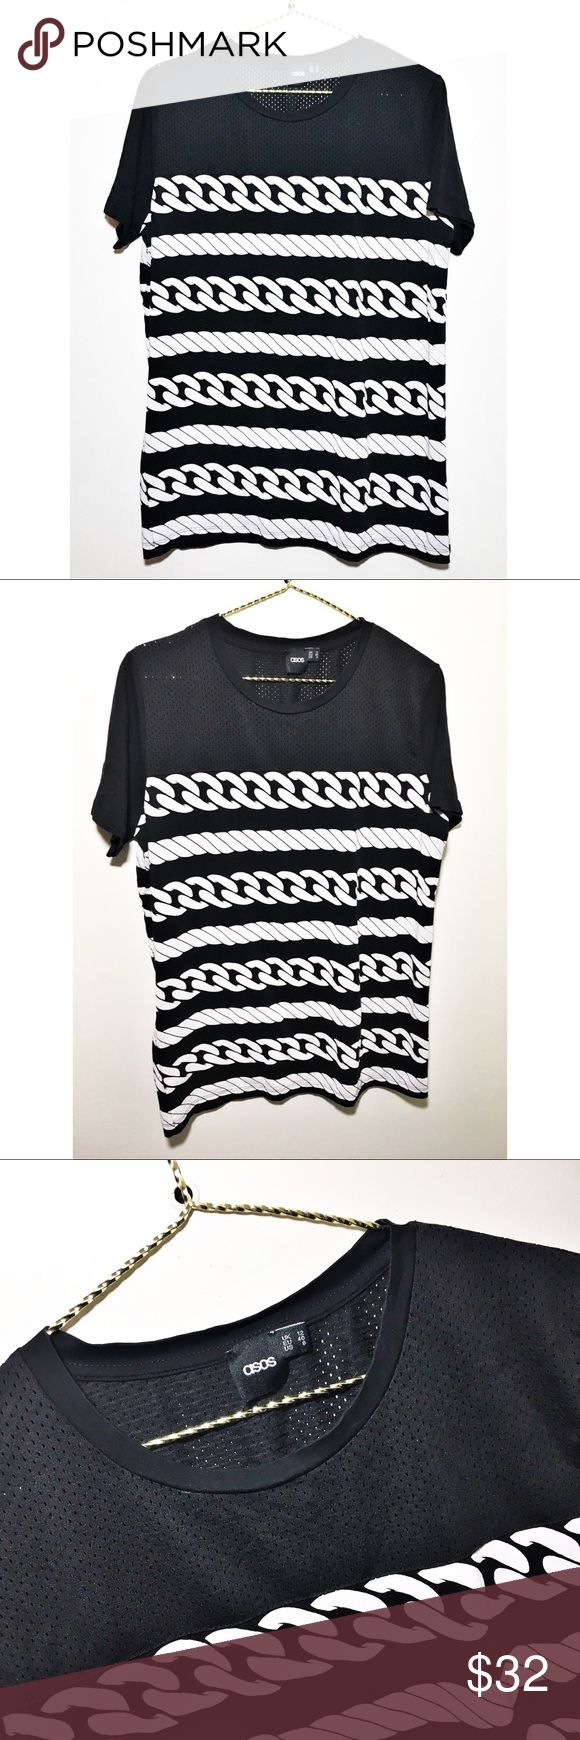 ASOS Top ASOS chain link / rope print tee. Top portion is 100% polyester jersey like material. Bottom and sleeves are 100% cotton. Like new! Size 8. ASOS Tops